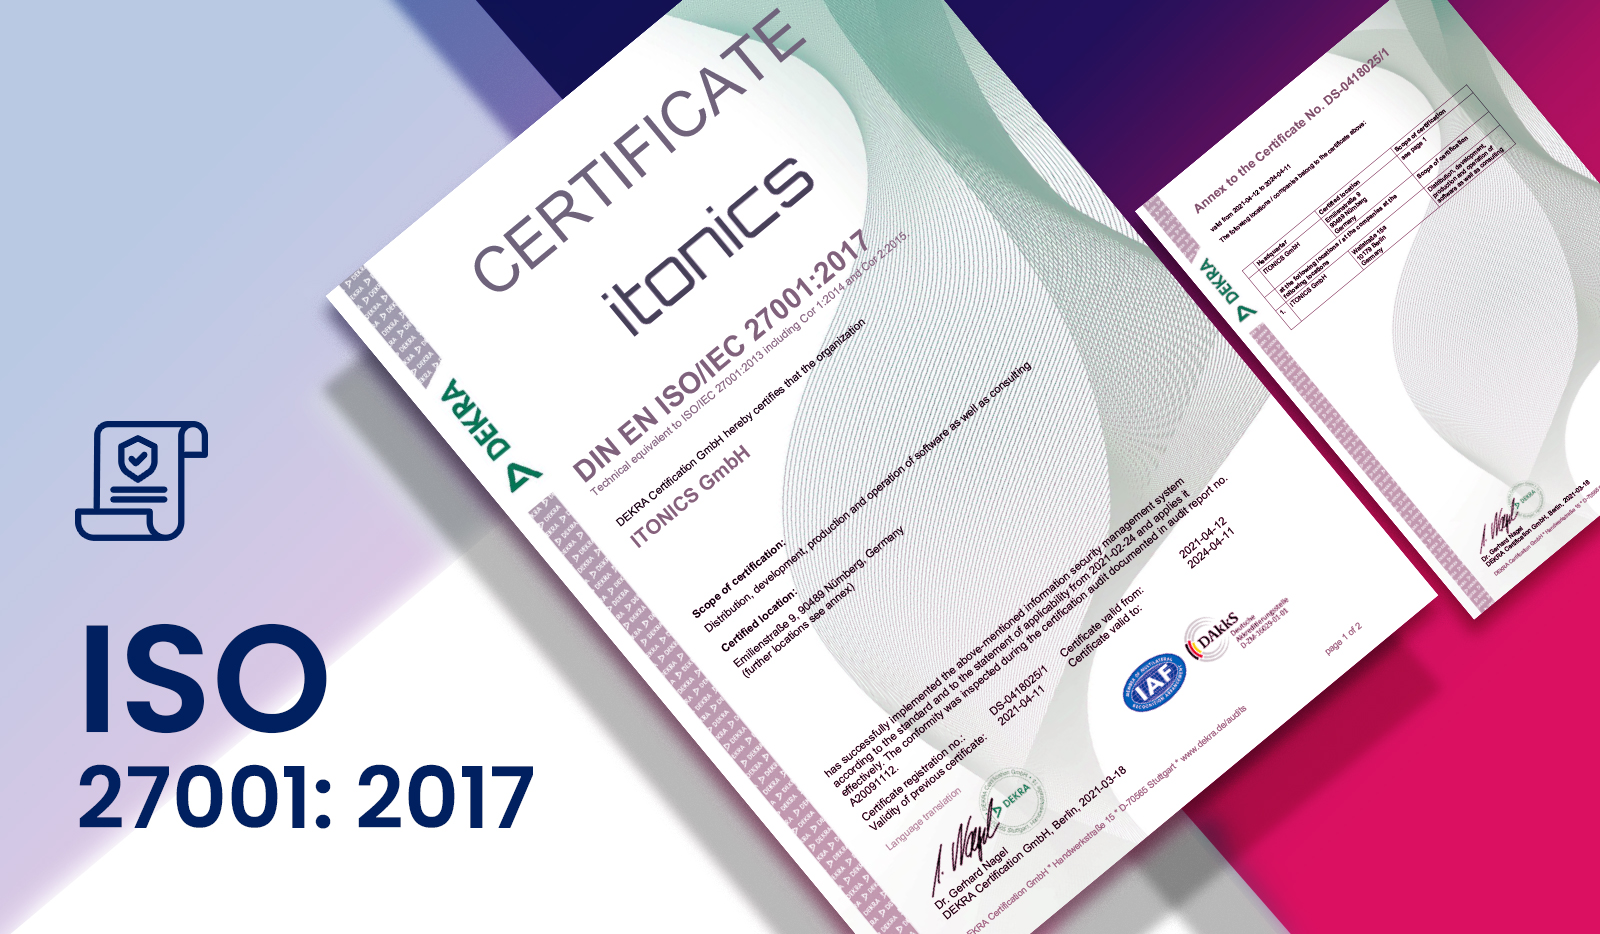 ITONICS is ISO 27001 re-certified